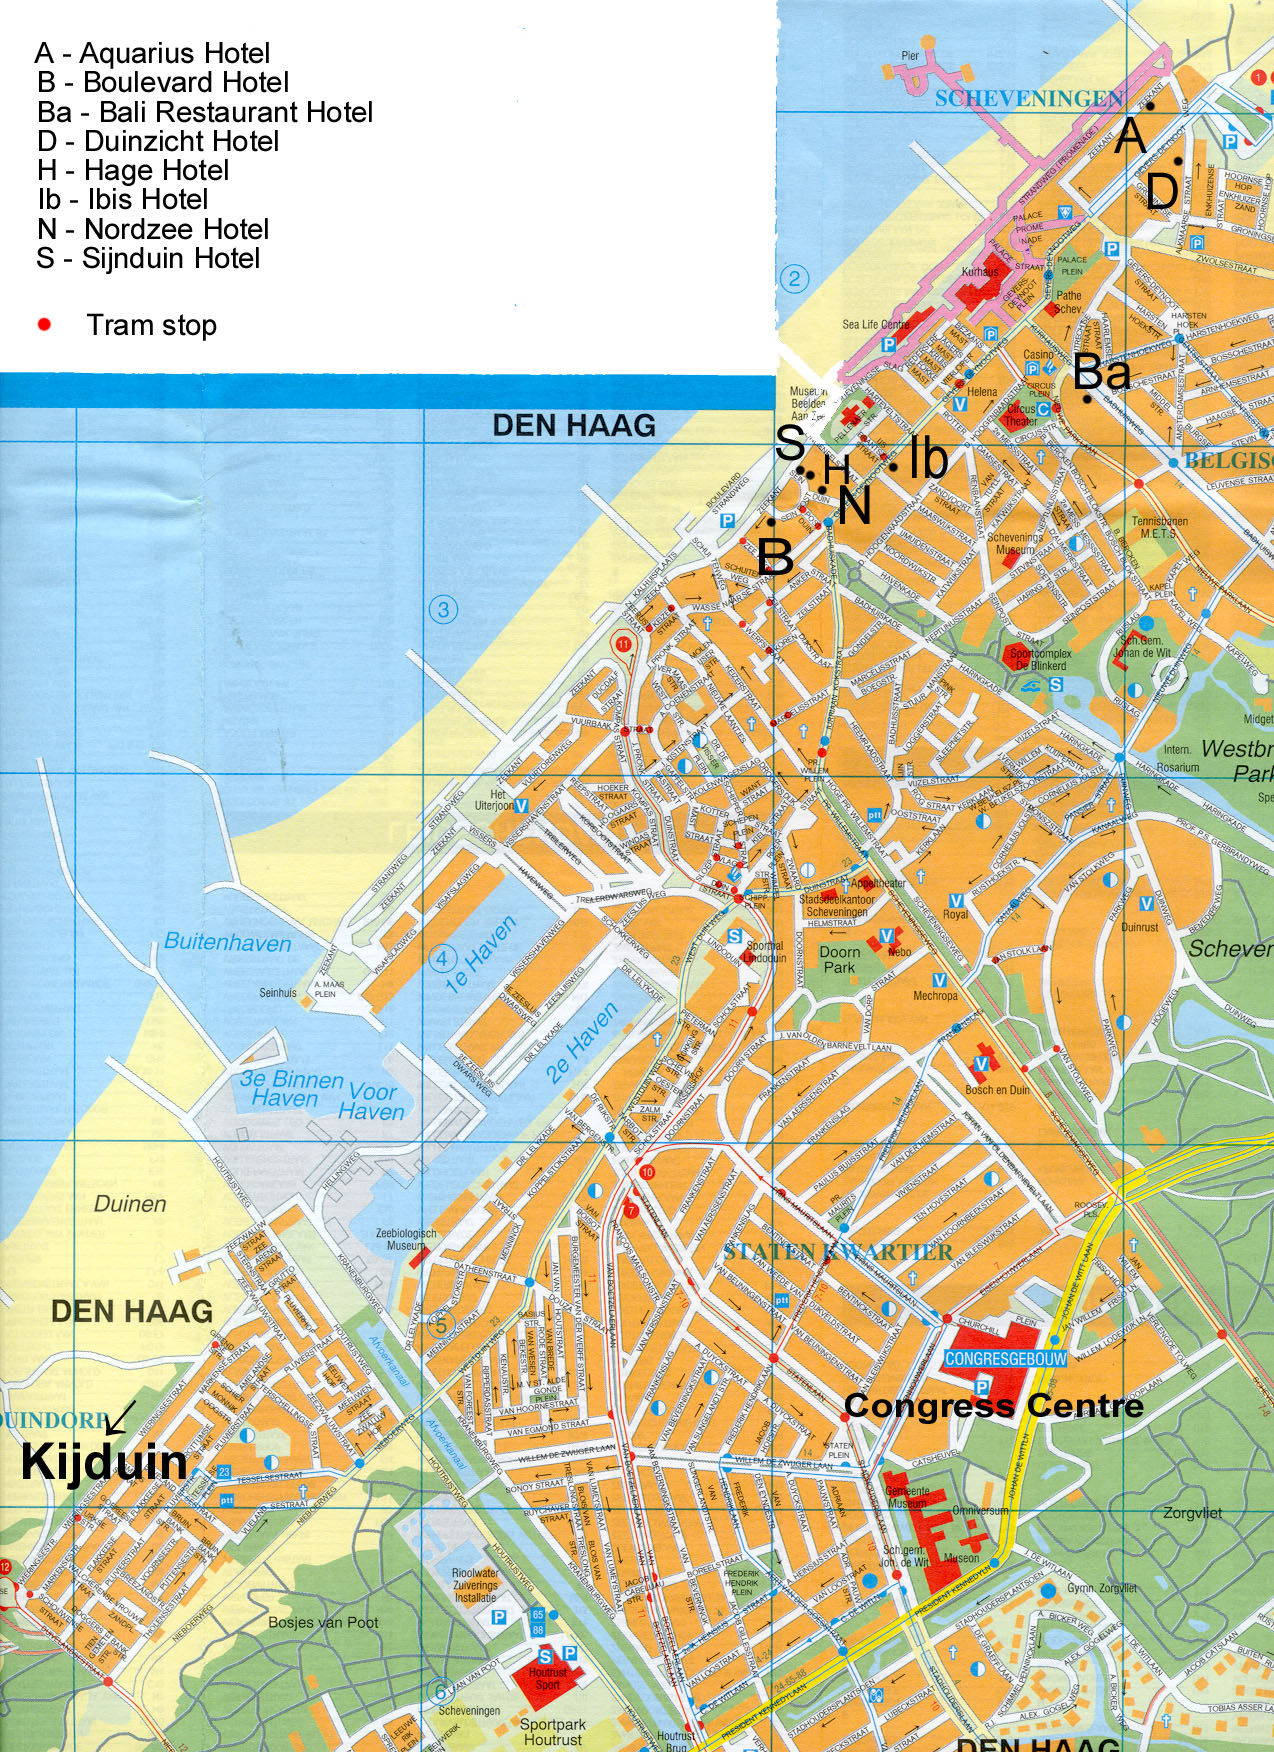 The Hague Hotel Map The Hague Netherlands mappery